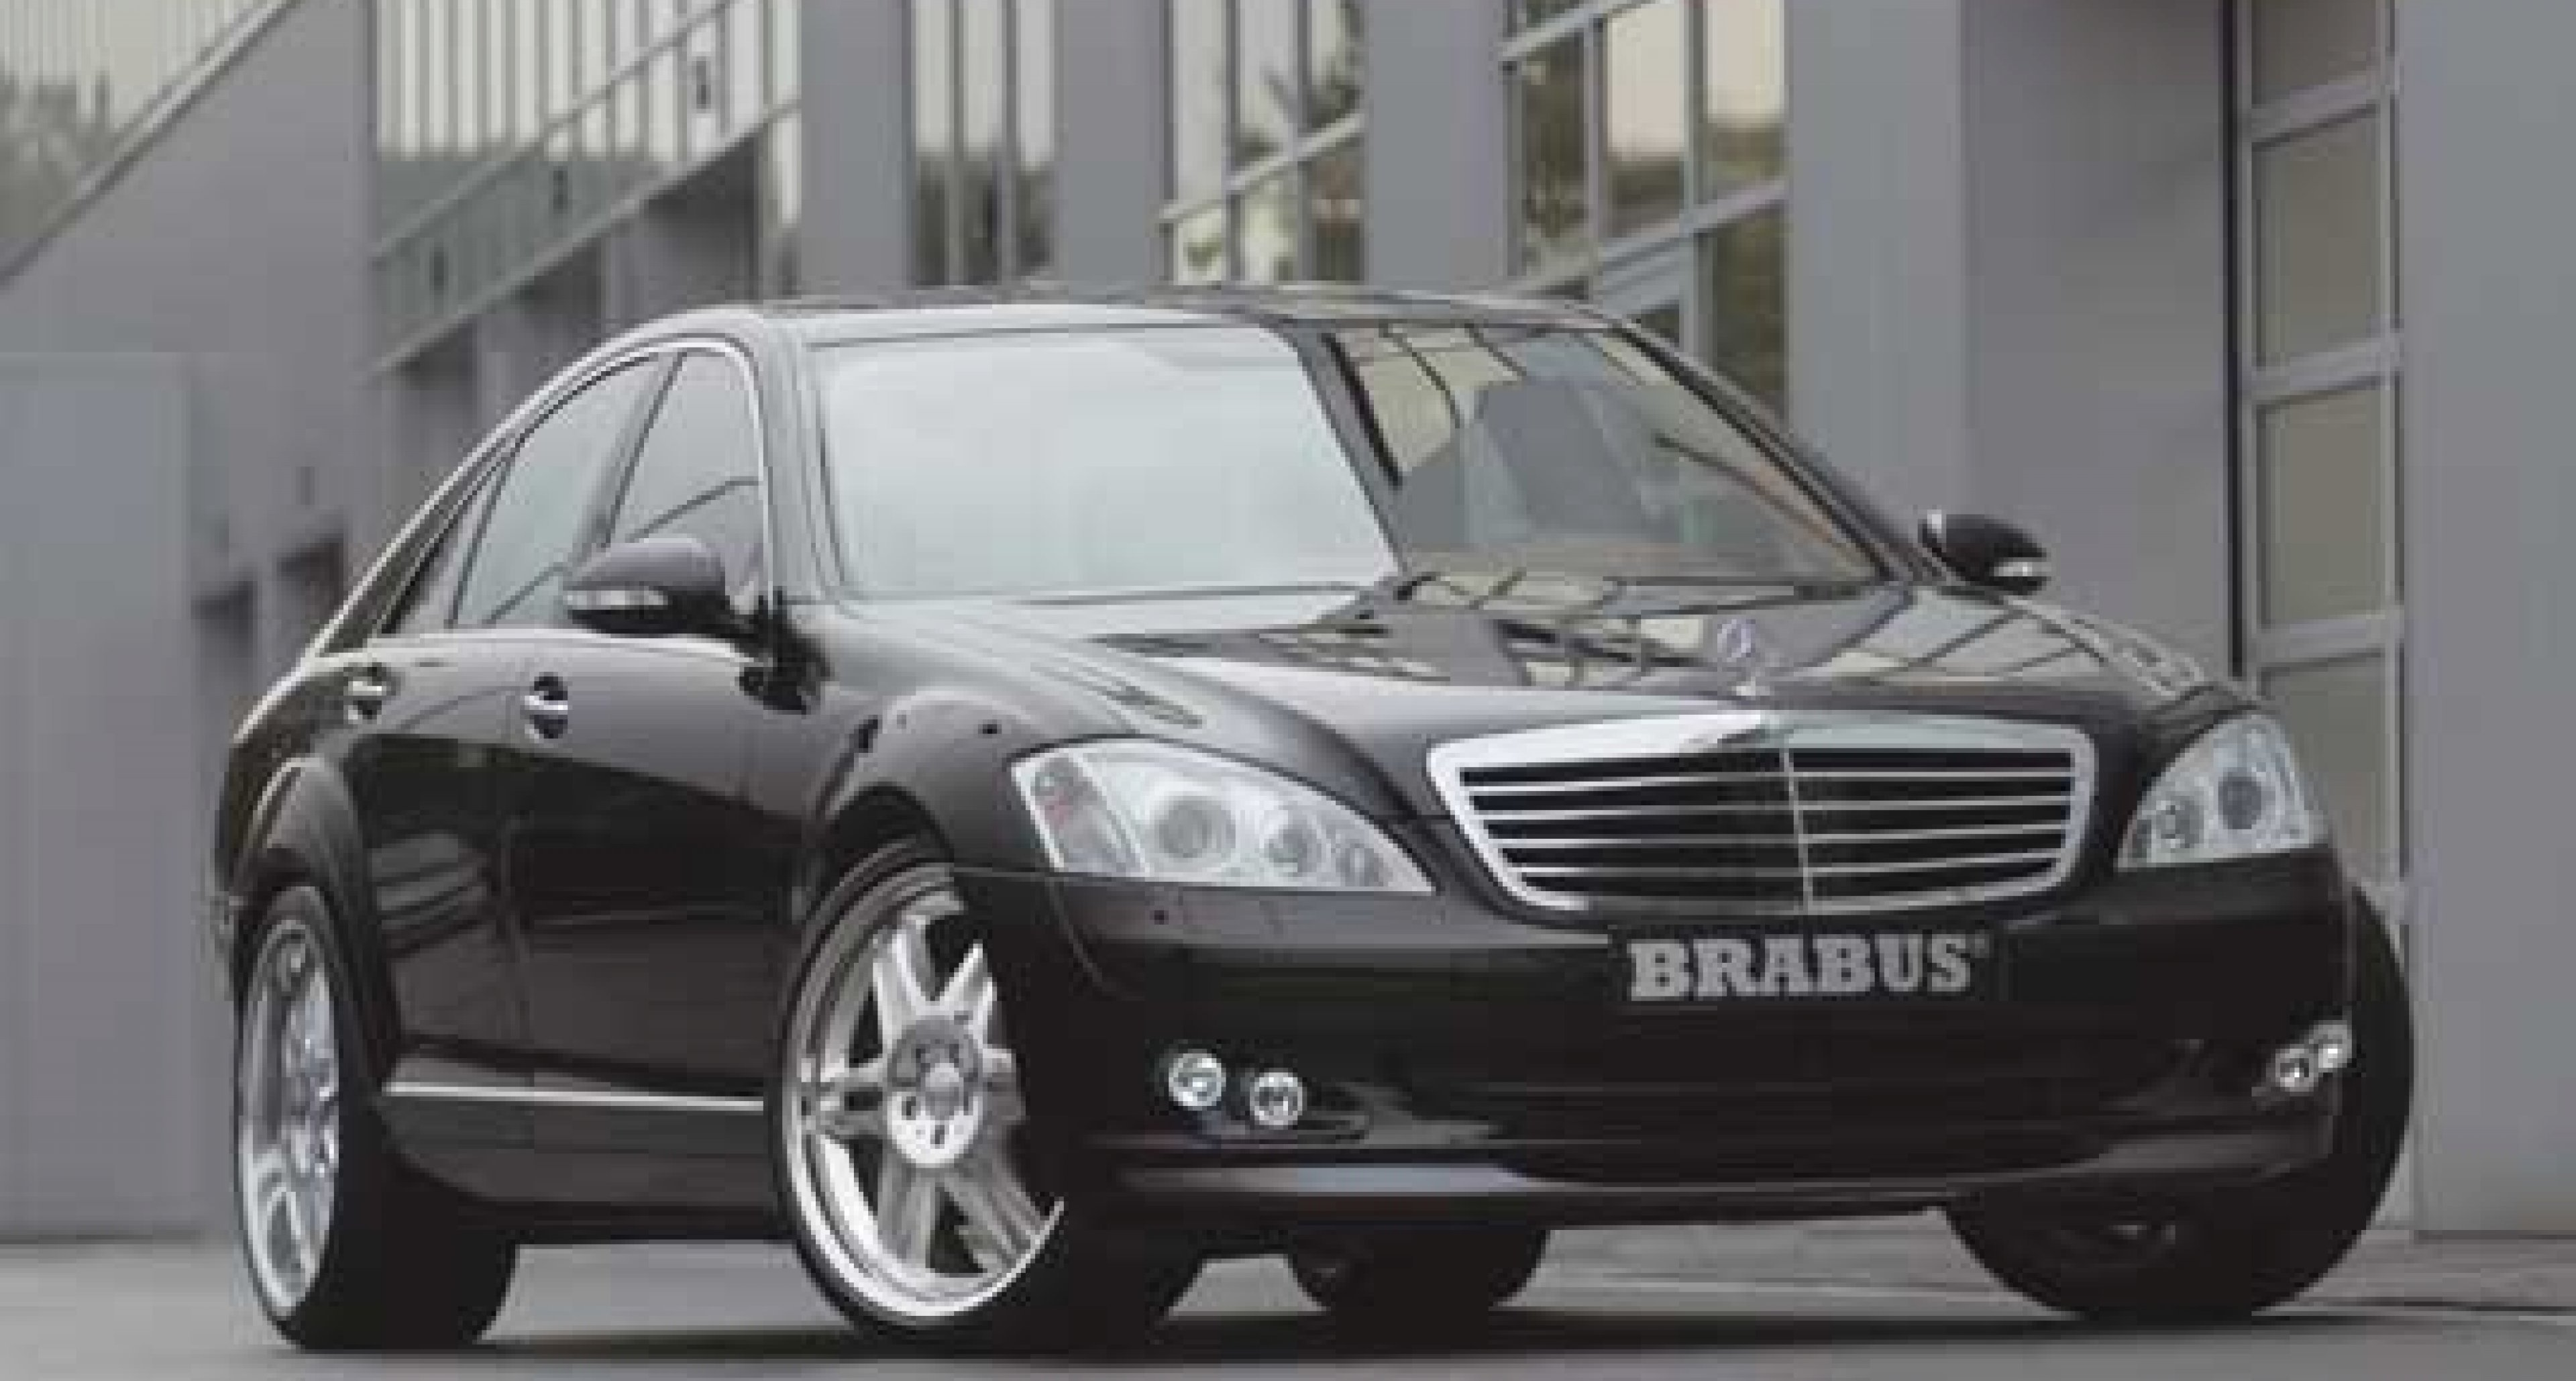 New S-Class by Brabus